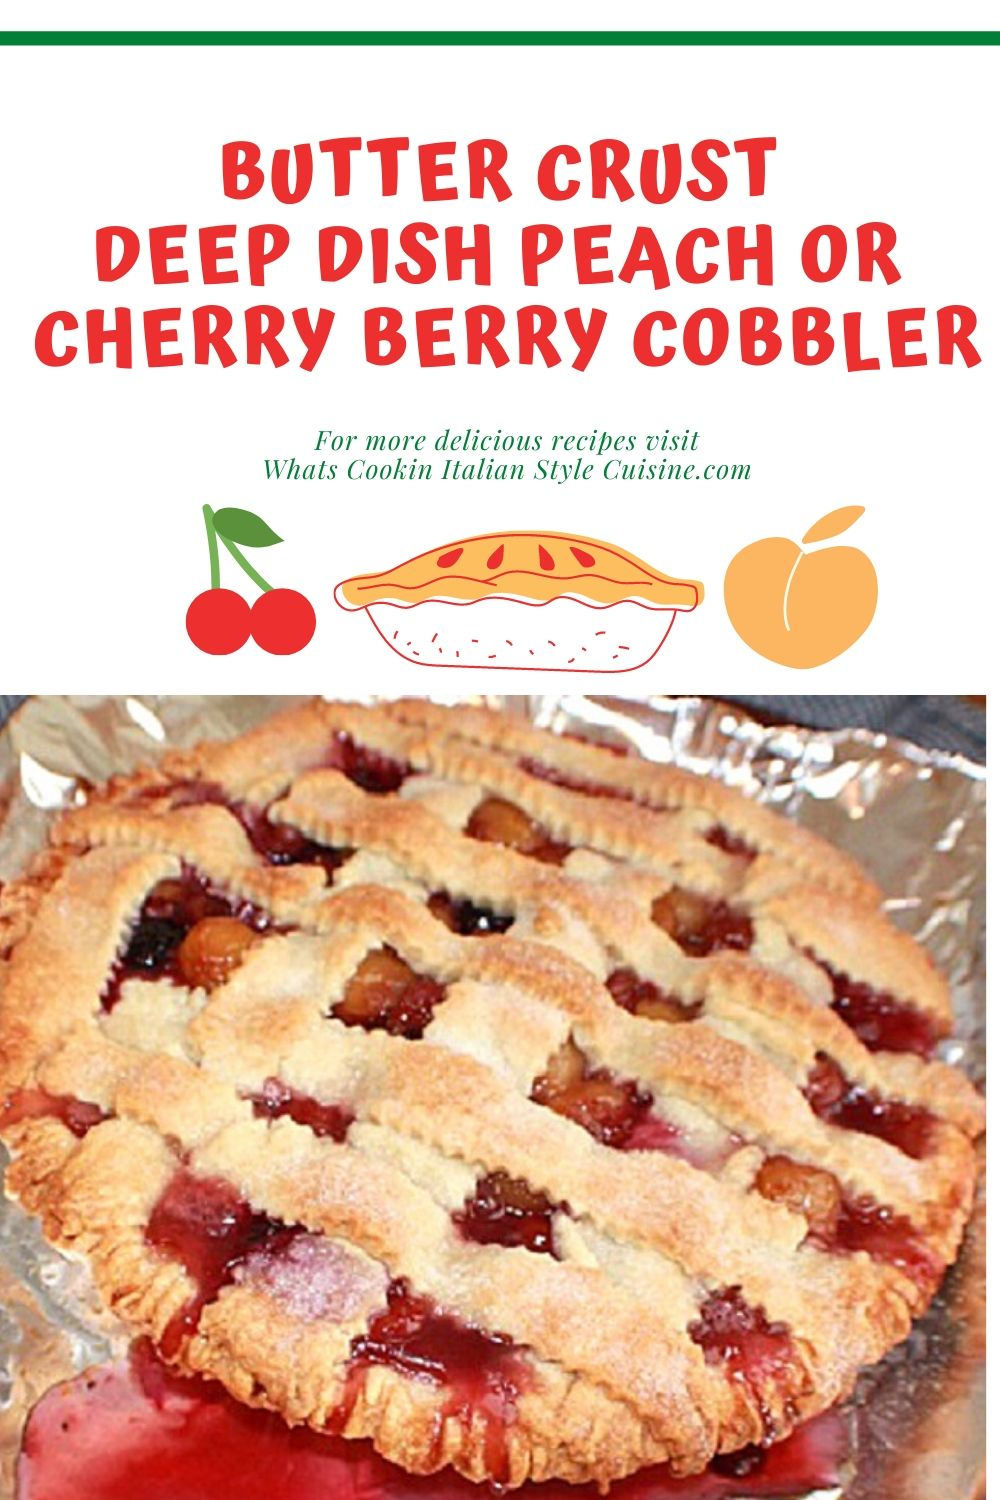 this is a southern style double crusted pie cobbler with peaches or cherries